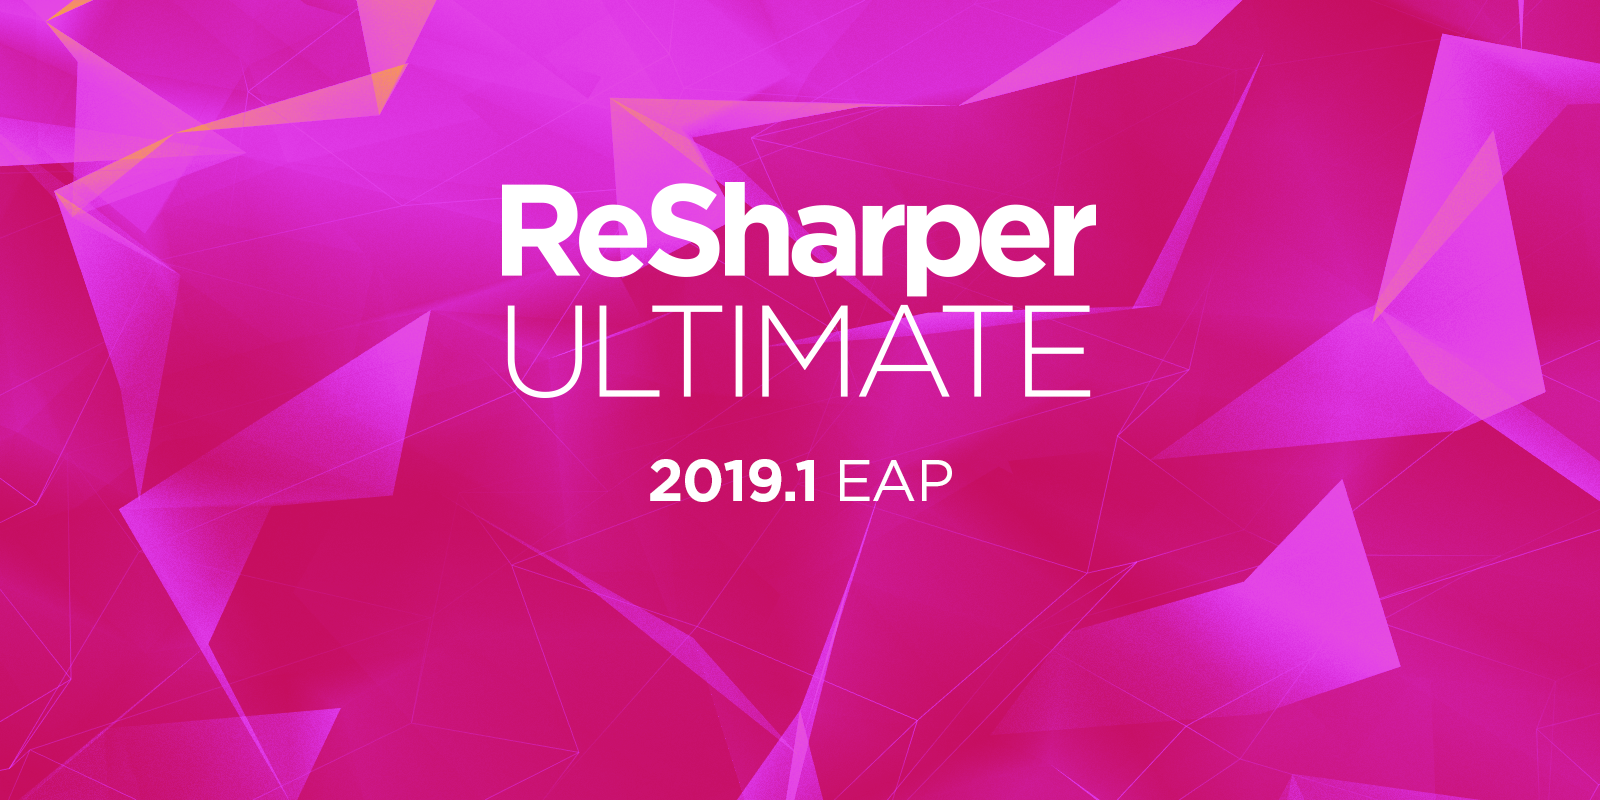 ReSharper Ultimate Starts its Early Access Program for 2019.1!